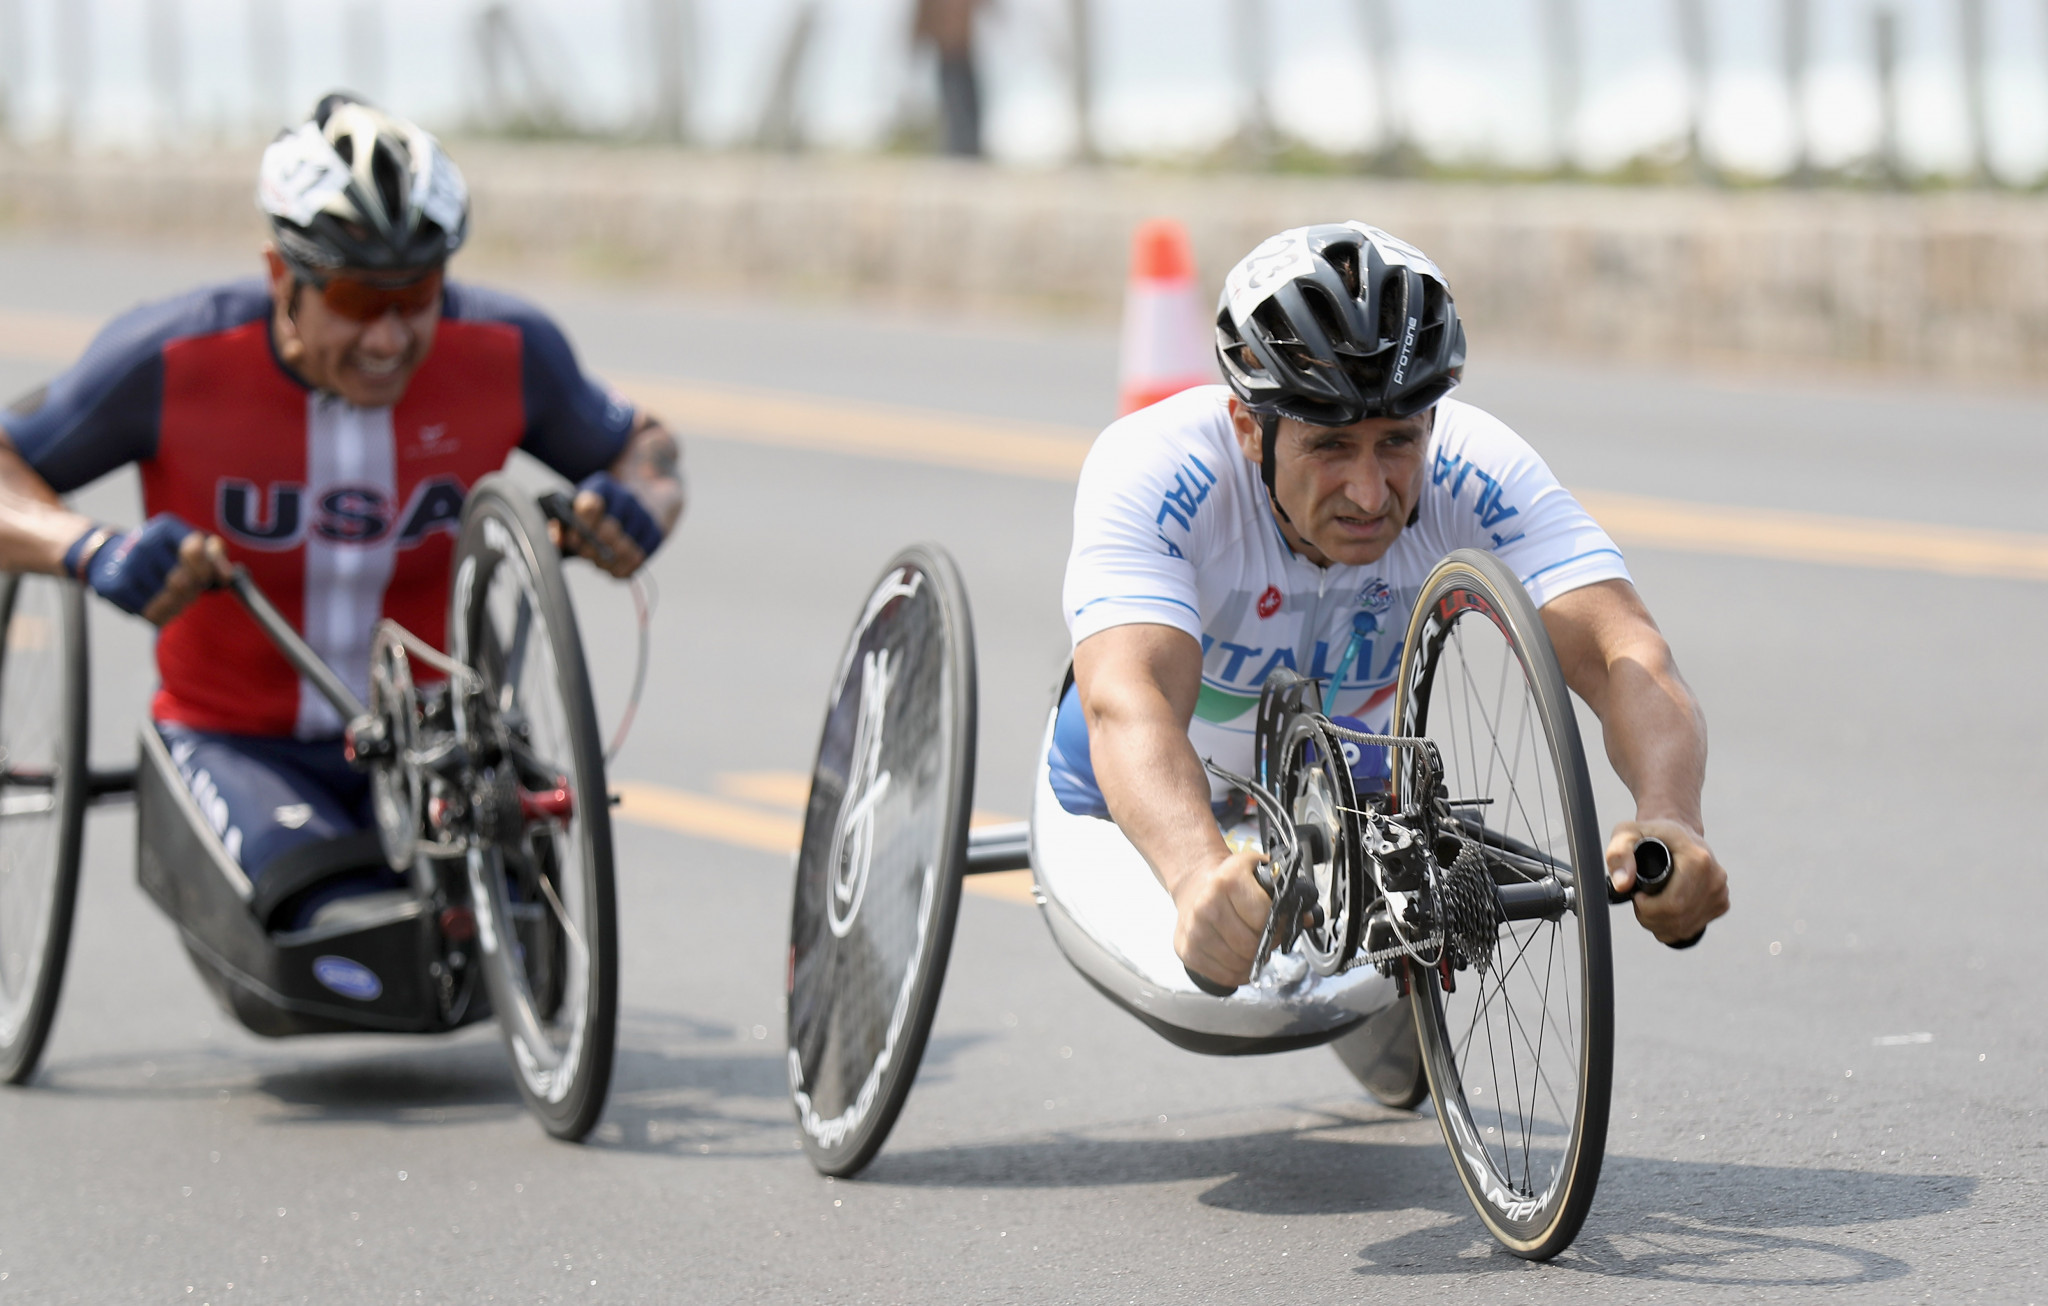 Alessandro Zanardi of Italy competes in the Men's Road Race H5 on day 8 of the Rio 2016 Paralympic Games ©Getty Images